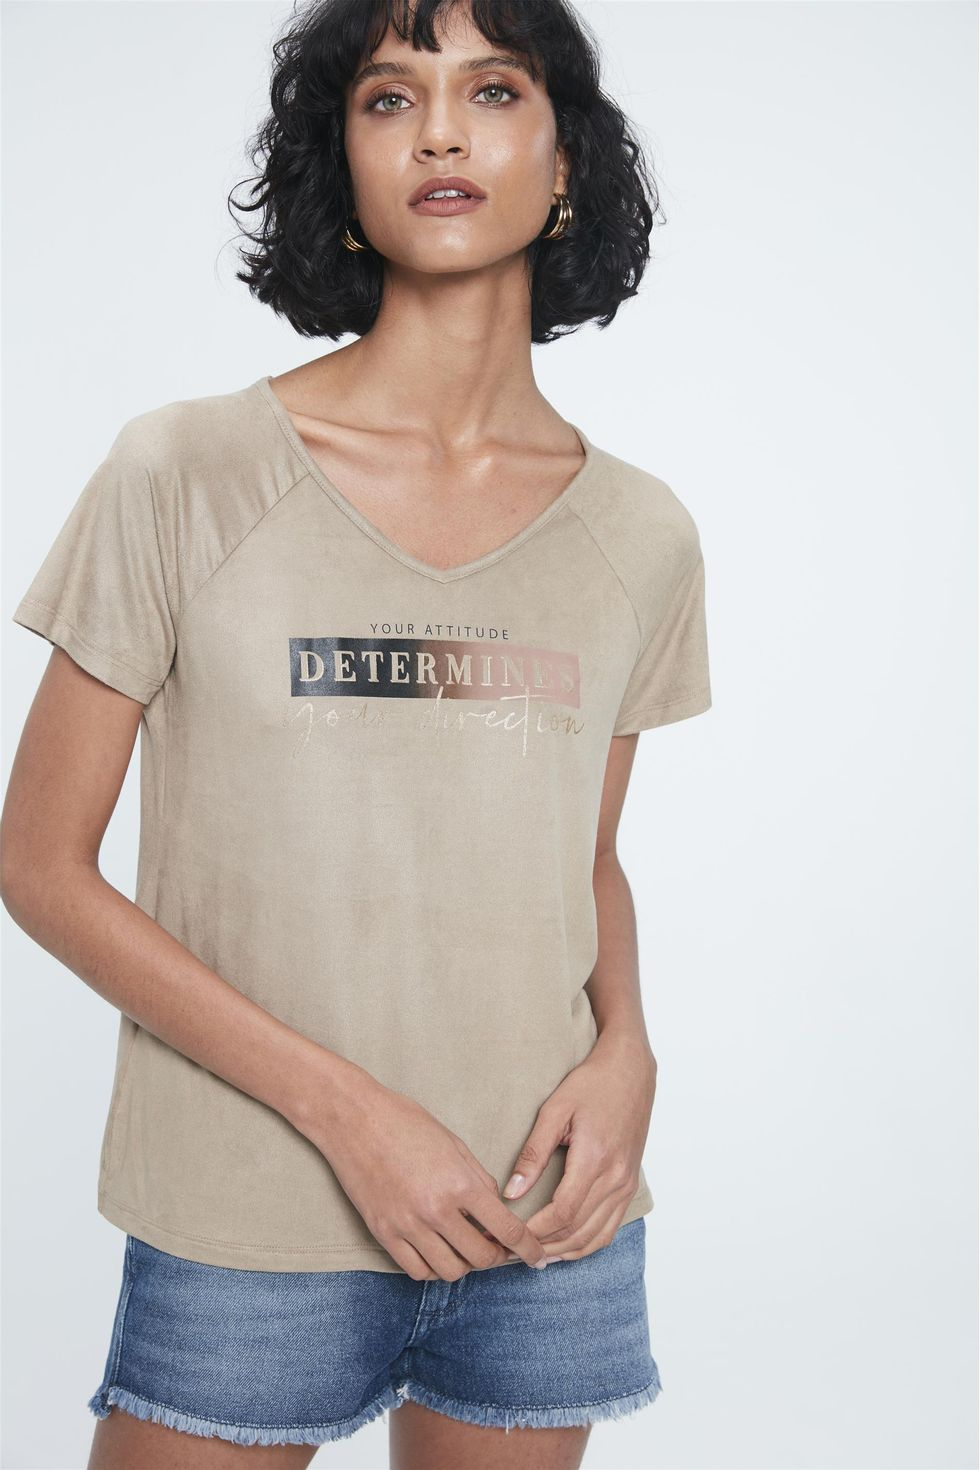 Camiseta-de-Suede-com-Estampa-Determines-Frente--